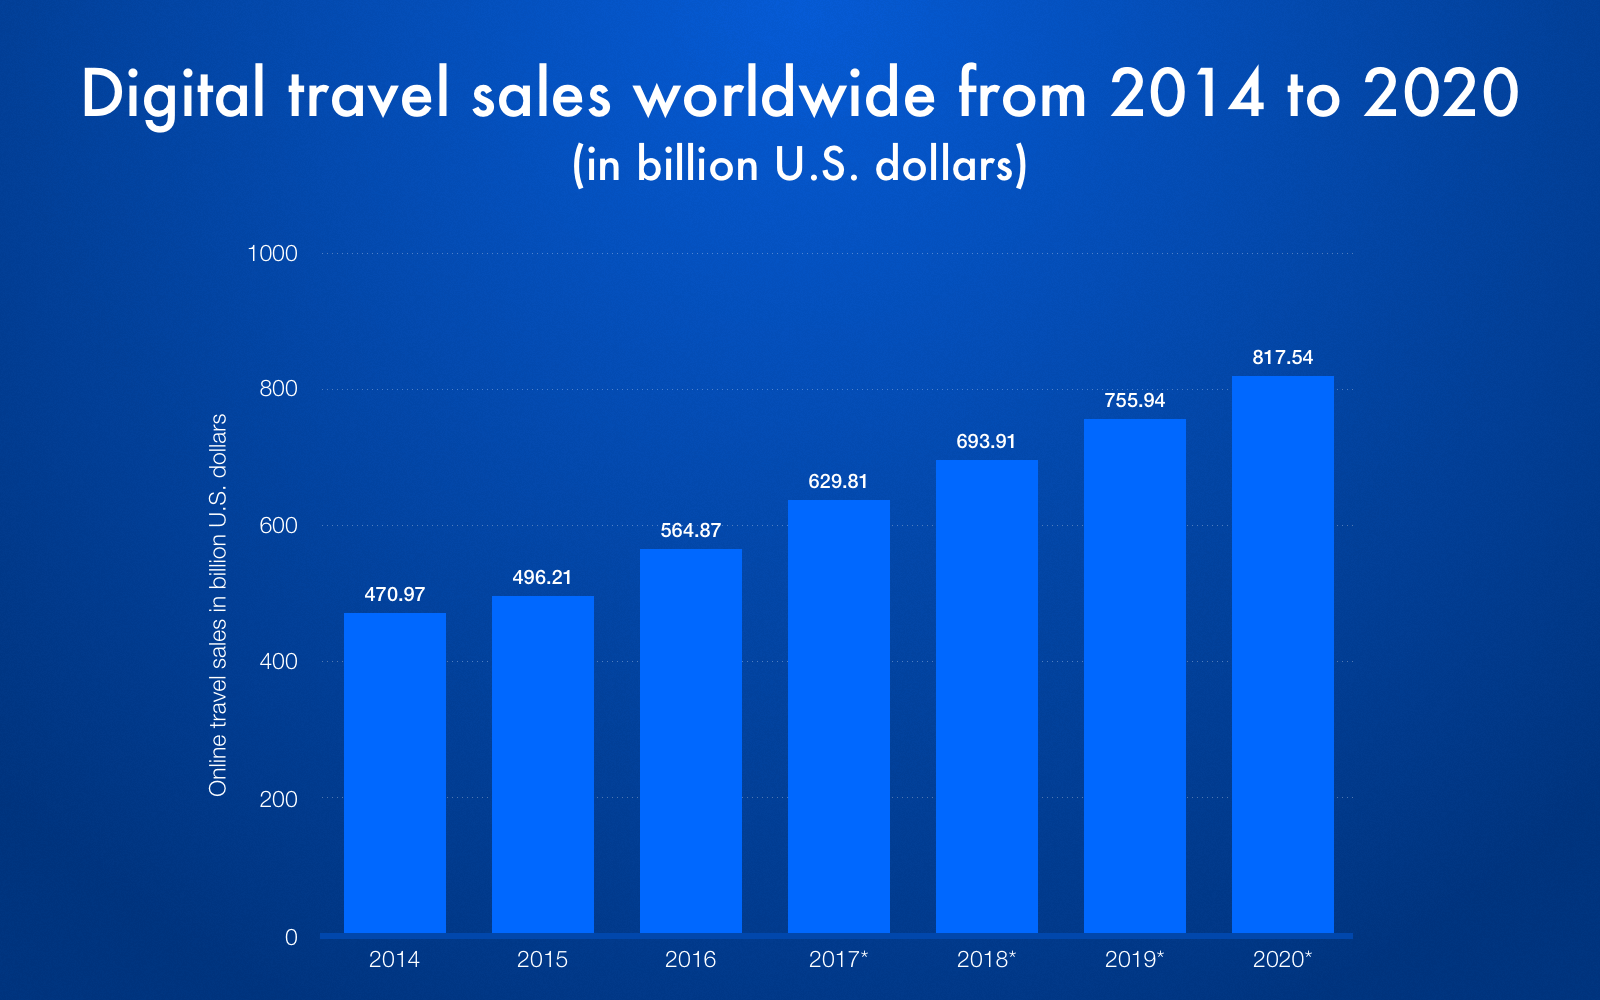 Statistics on digital travel sales worldwide